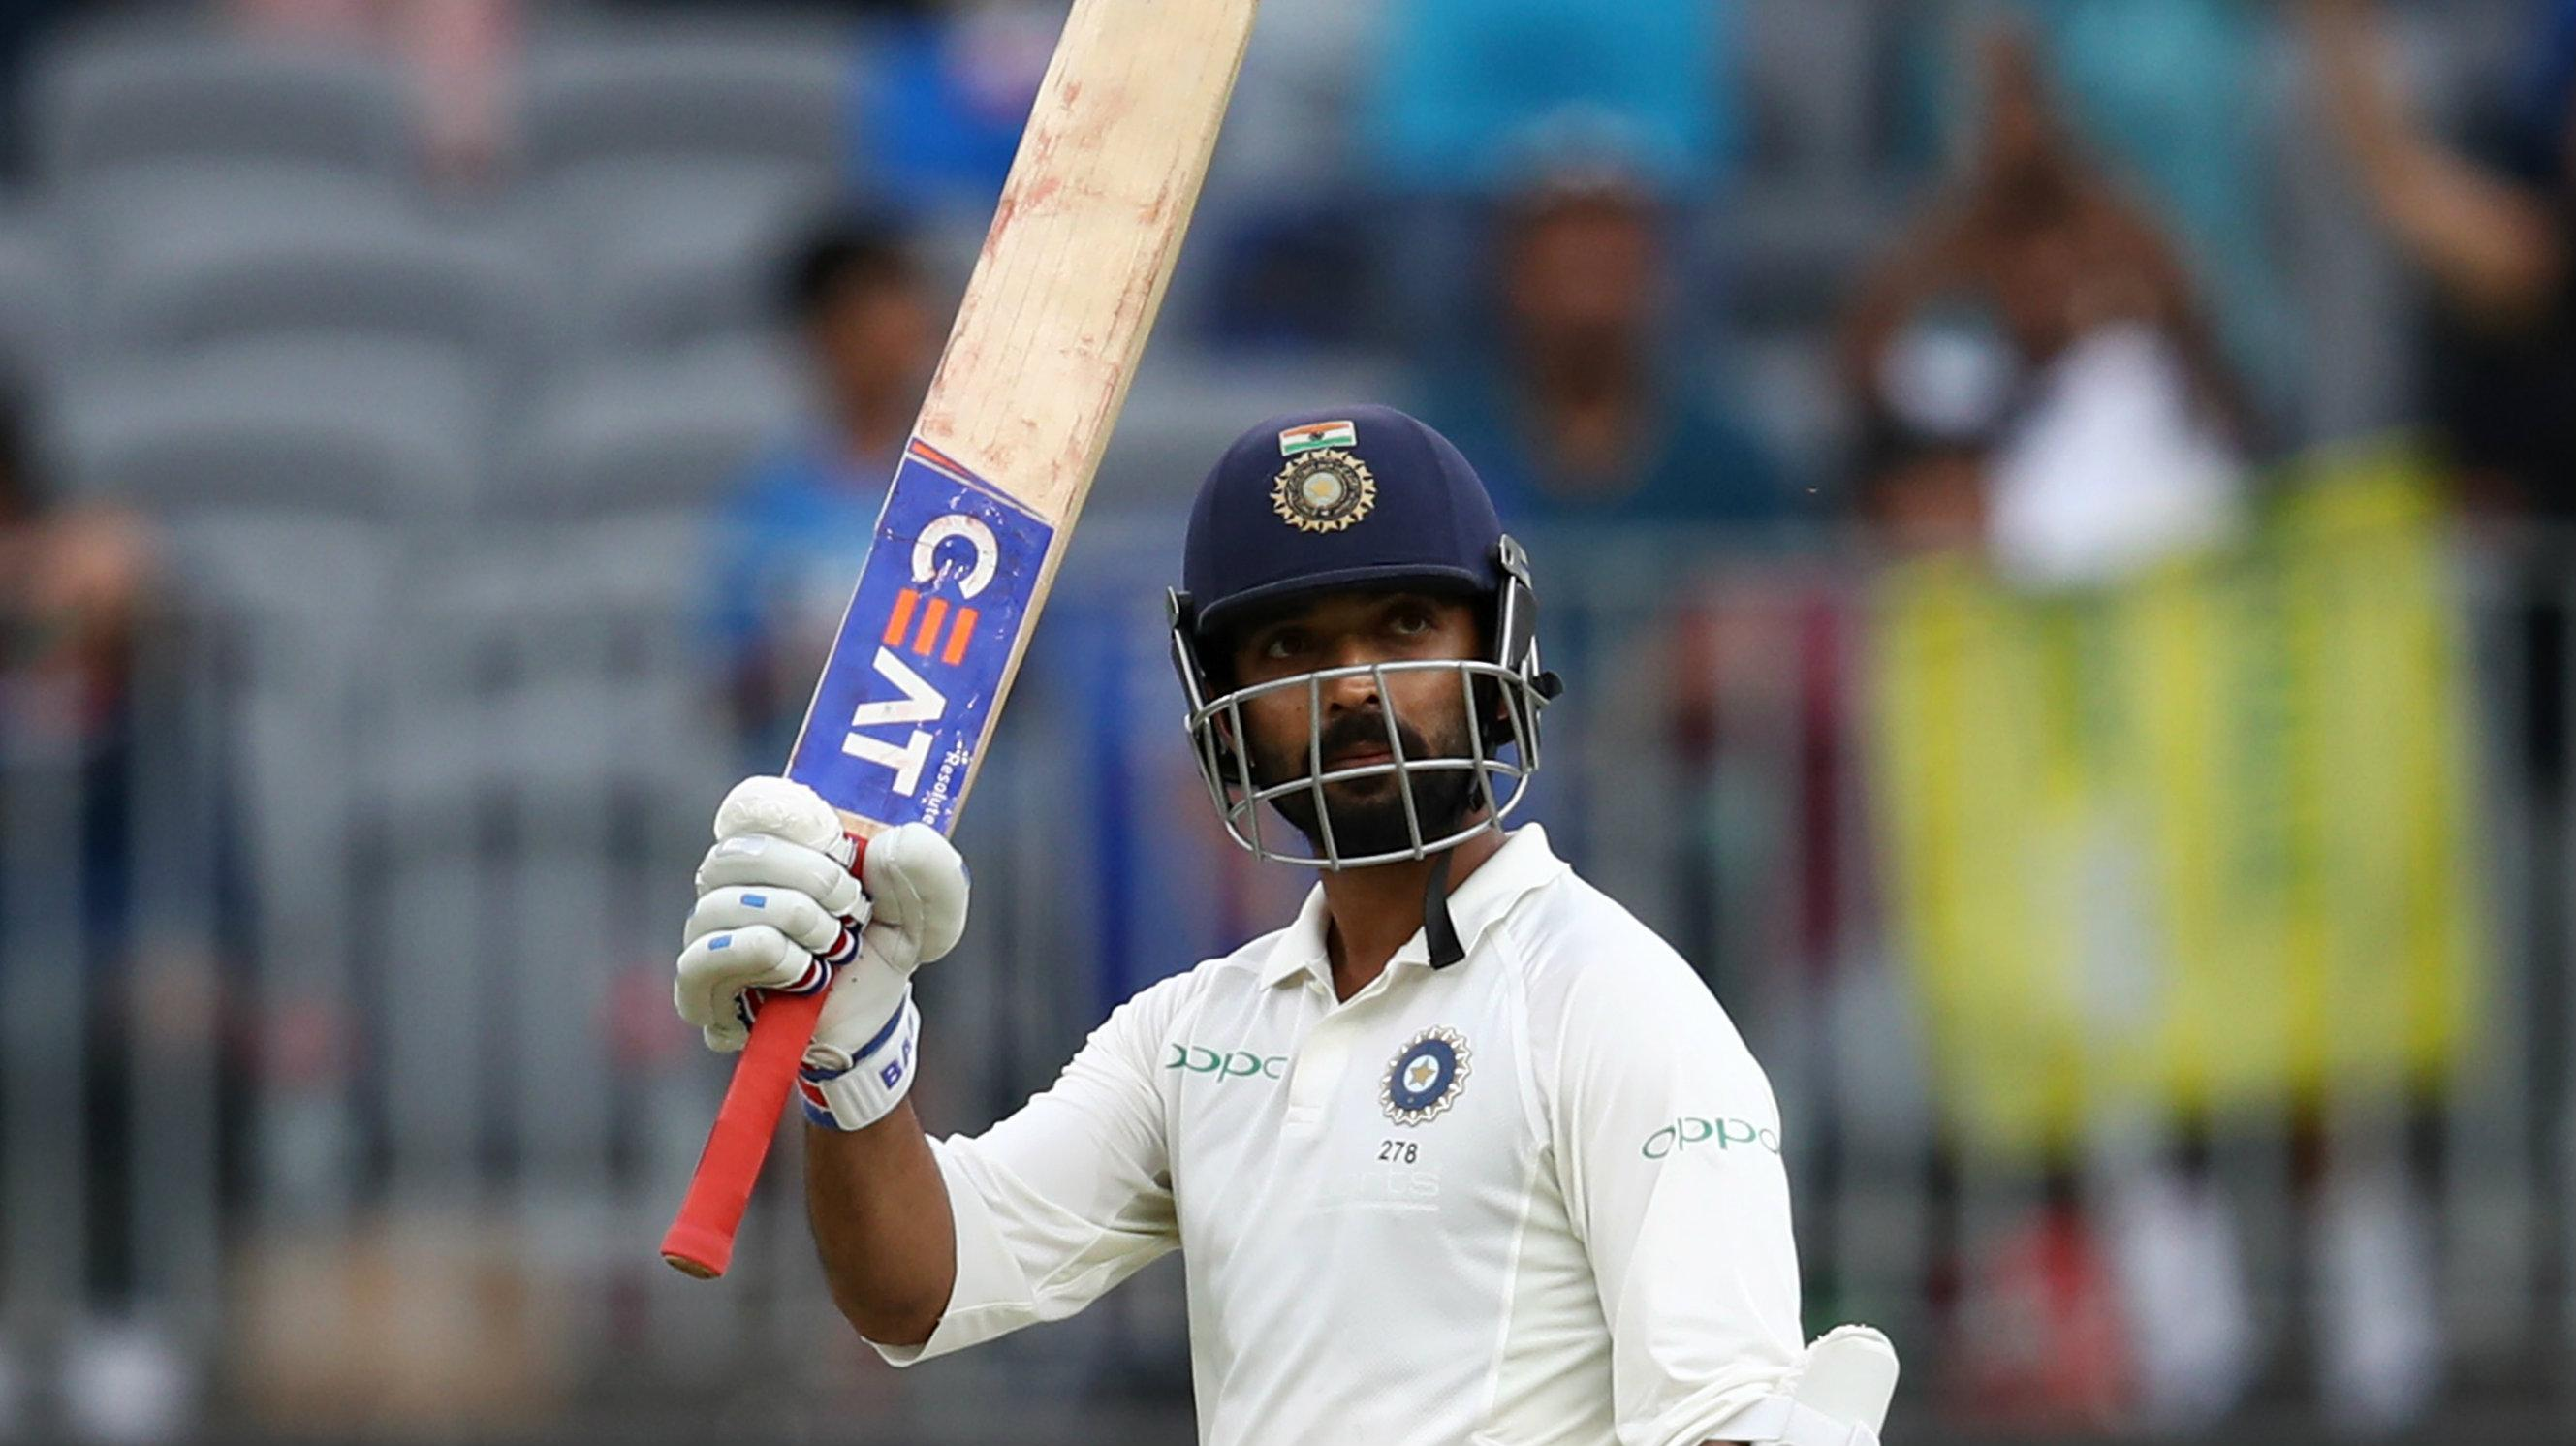 Batters will have to take responsibility: Rahane